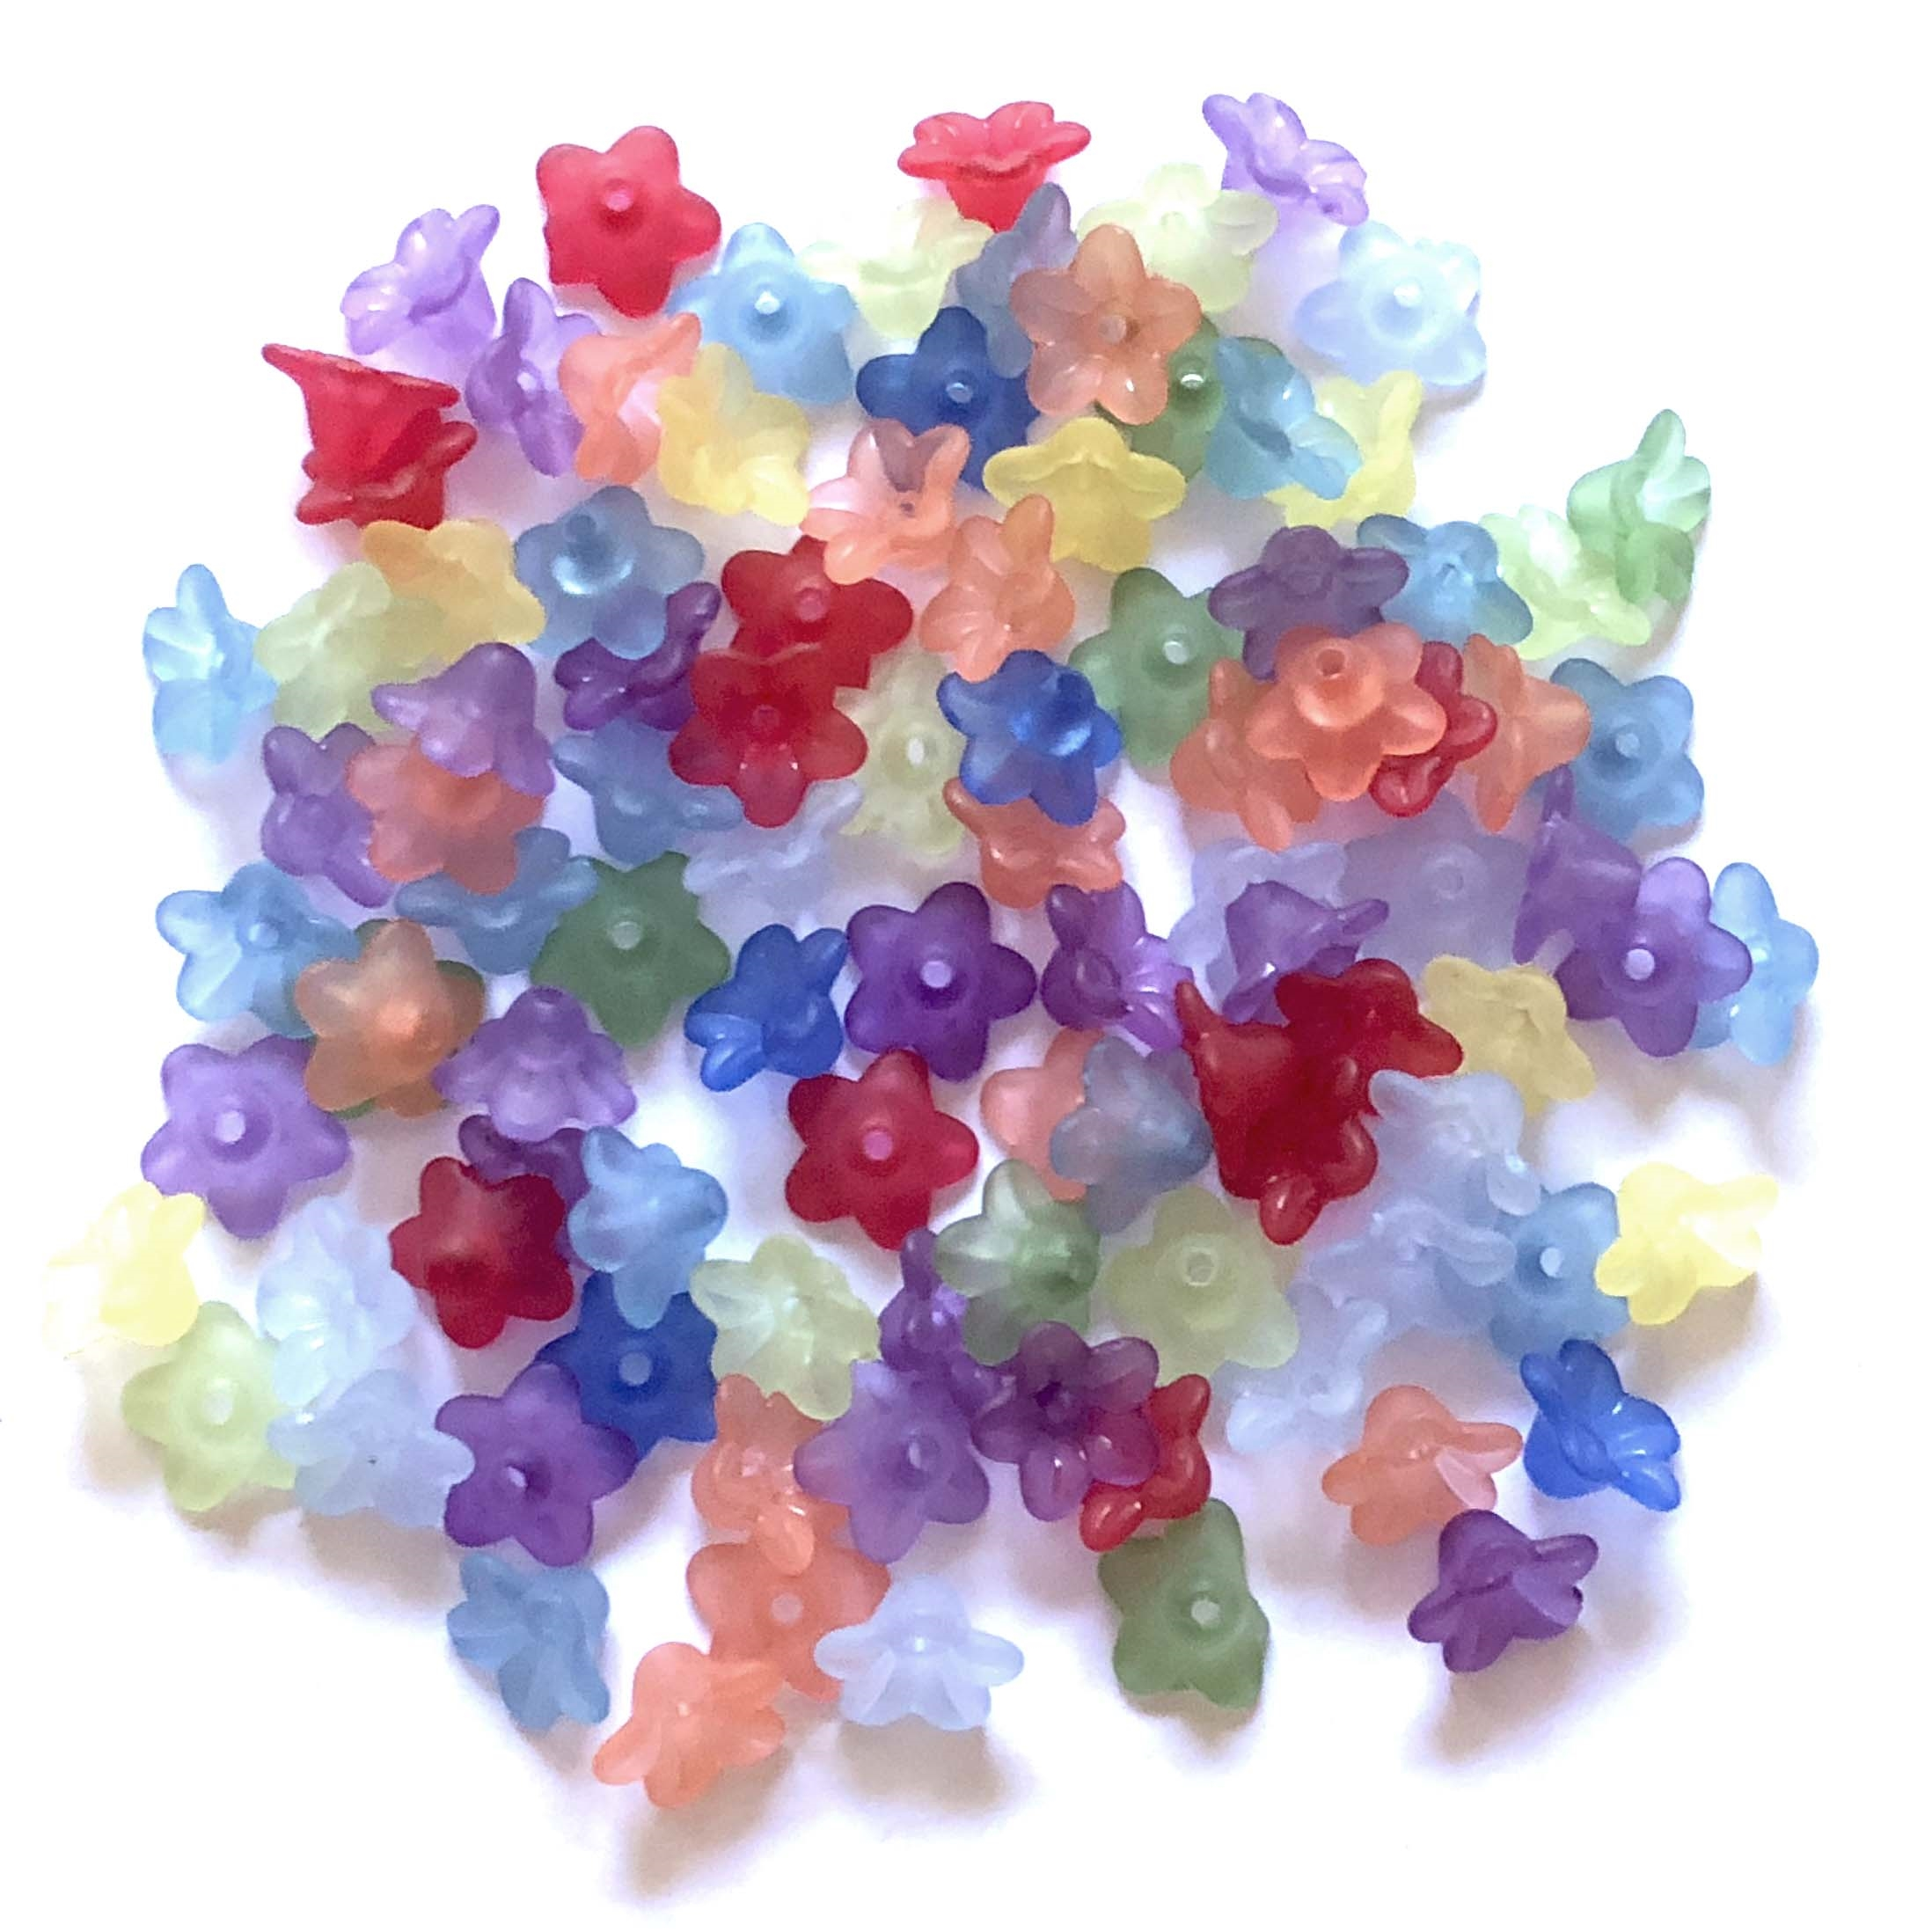 frosted acrylic flower beads, flower beads, mixed colors, plastic beads, transparent flower beads, 10mm, vintage supplies, jewelry making, jewelry supplies, jewelry findings, B'sue Boutiques, 08284